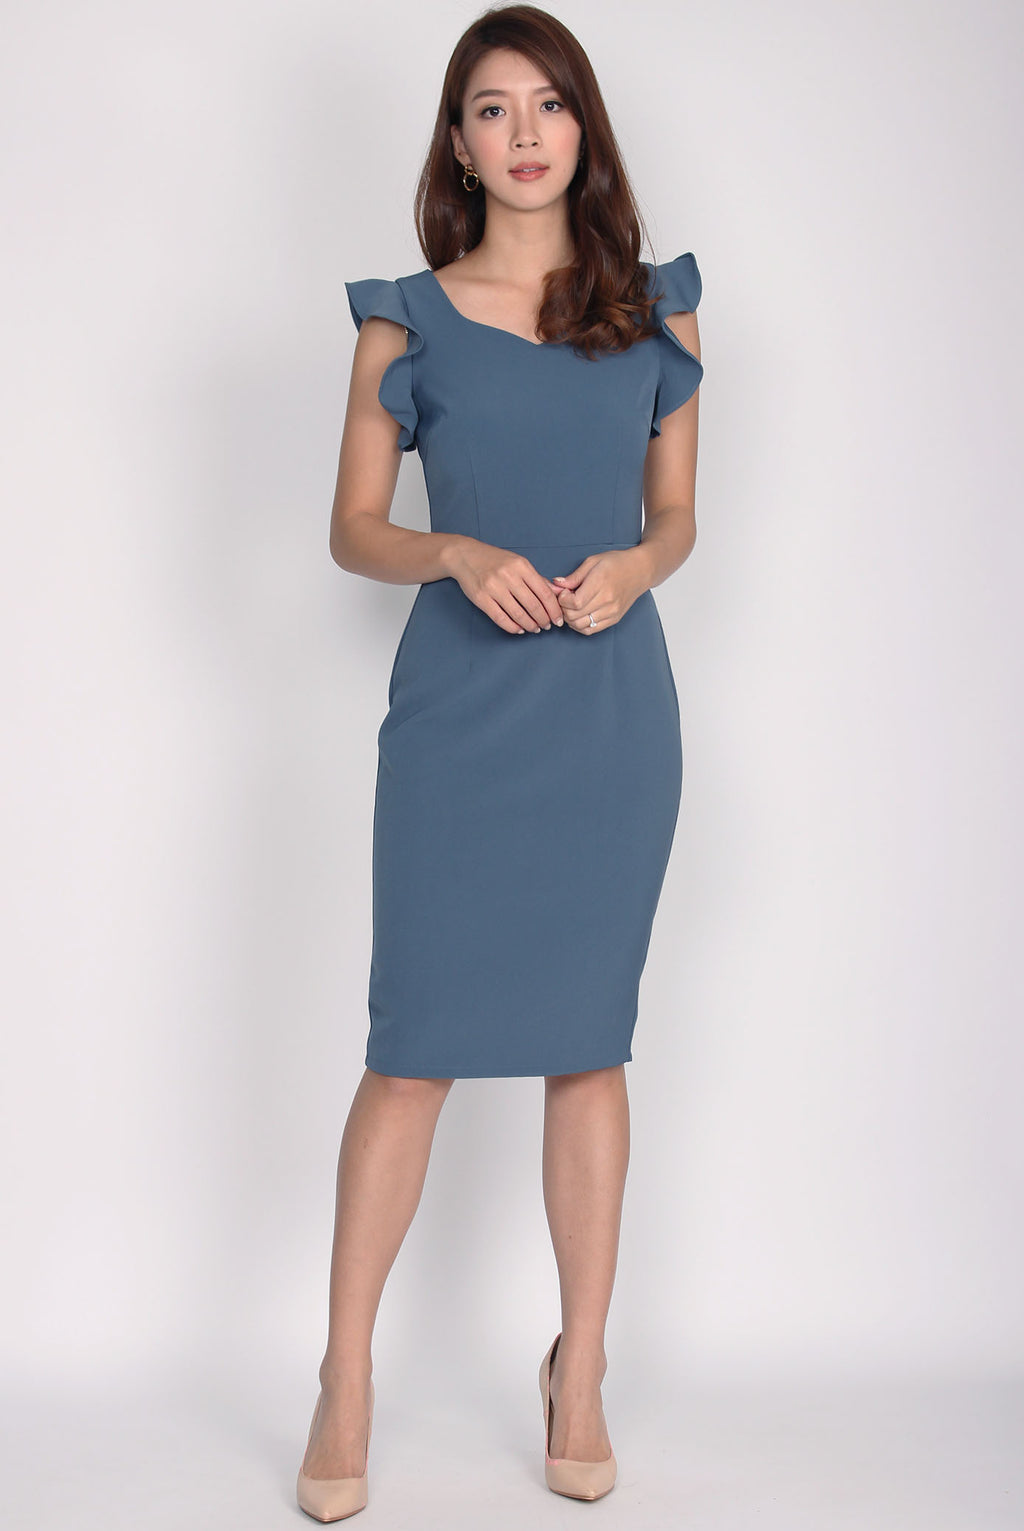 *Premium* Rosaria 2 Ways Sleeve Pencil Dress In Peacock